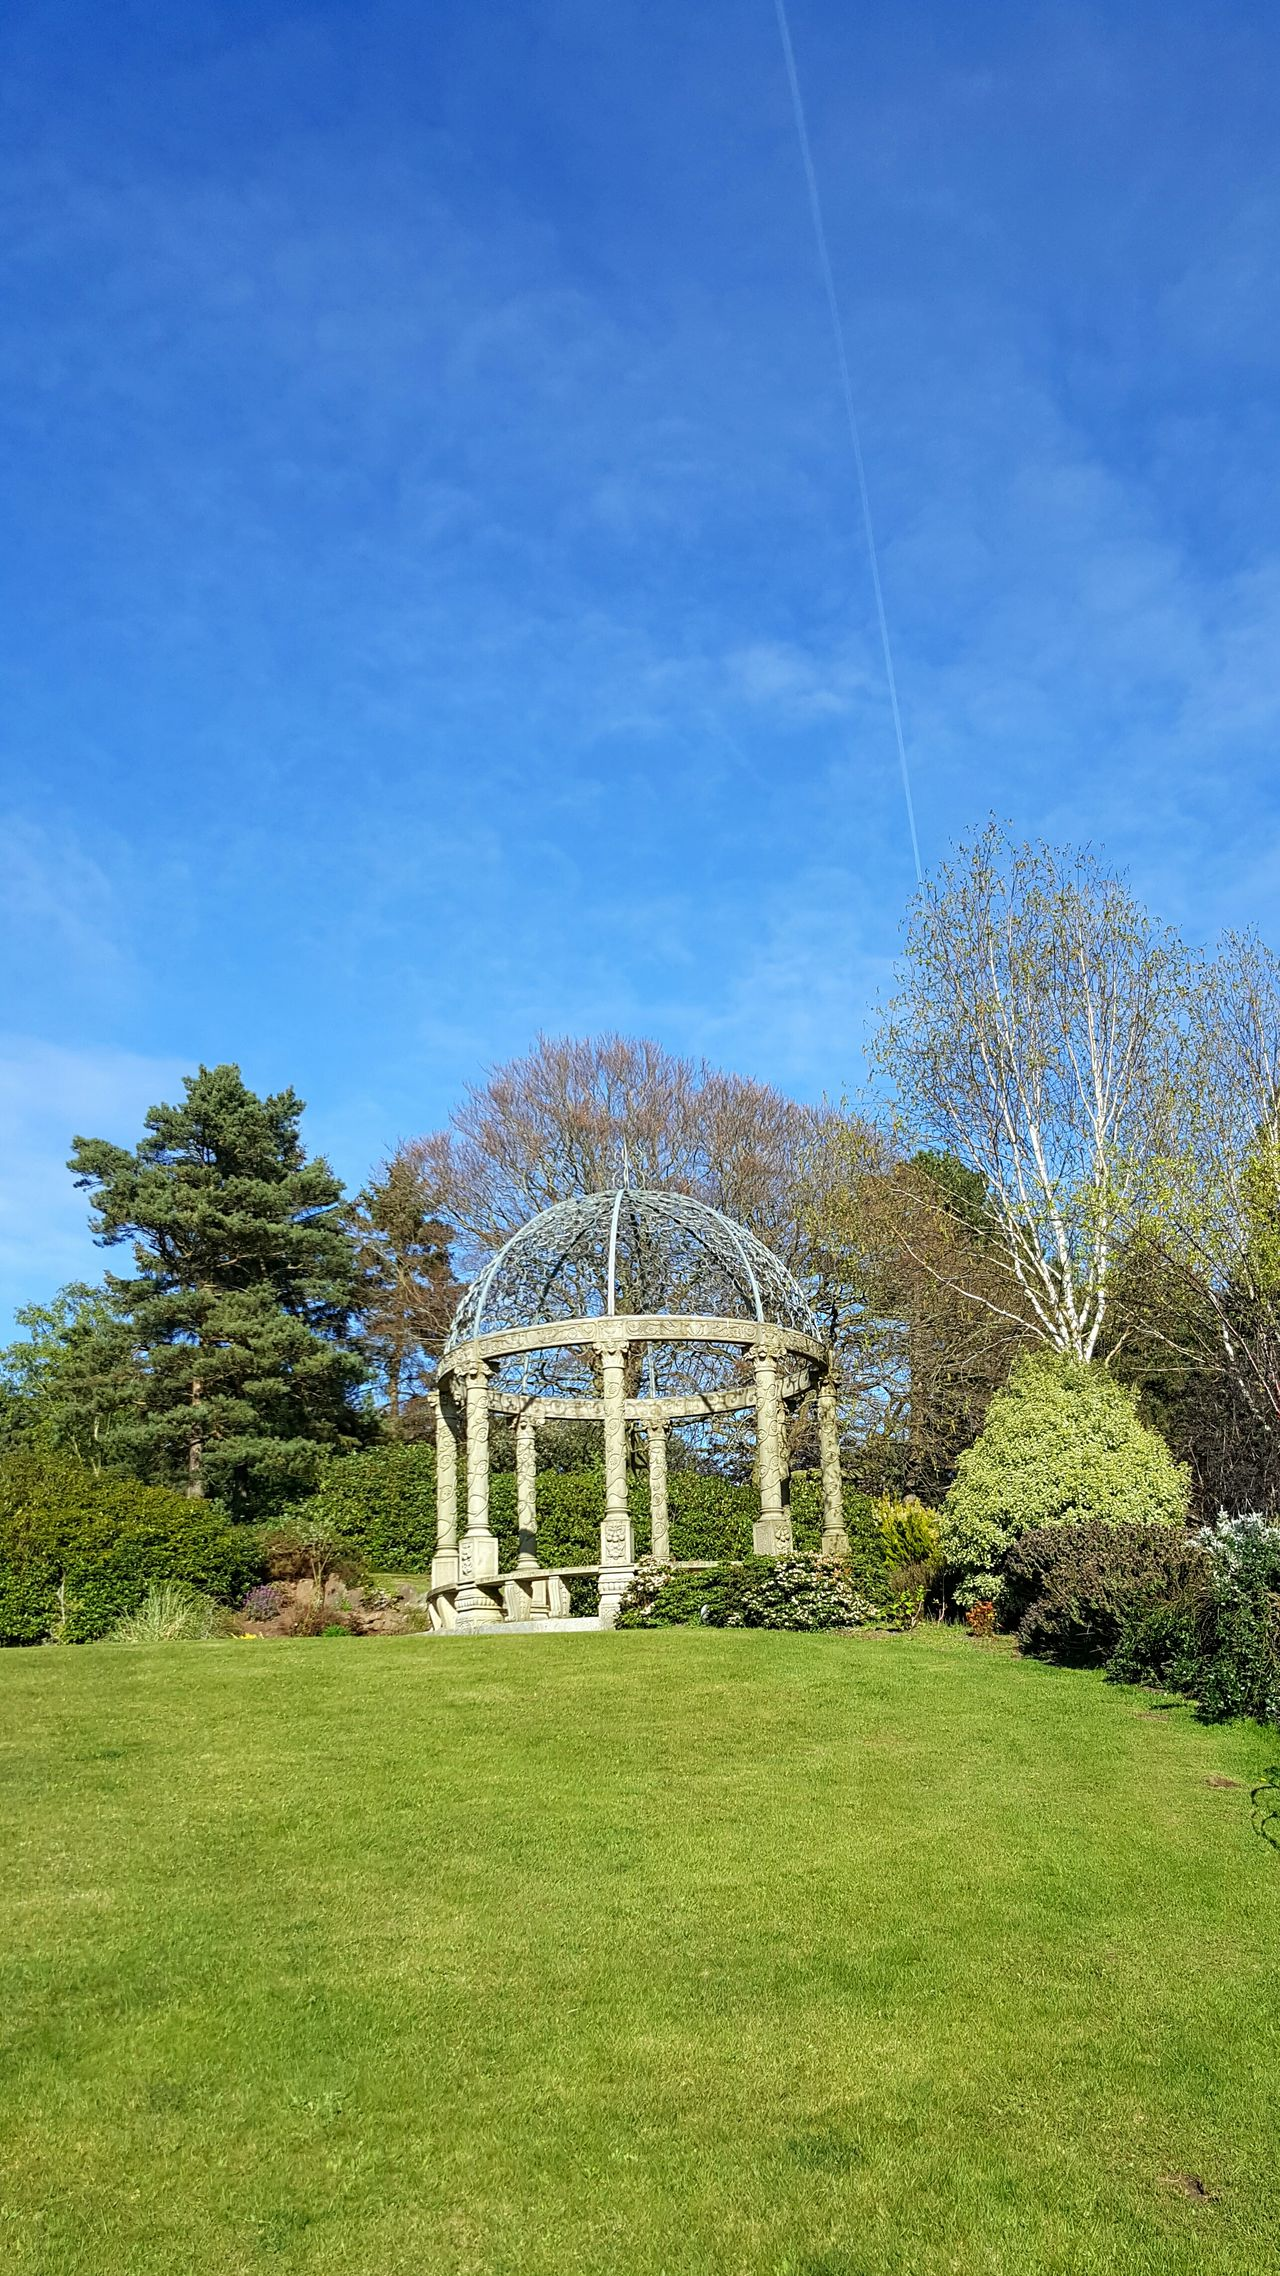 Green Color Blue Grass Sky No People Outdoors Day Nature Pergola Band Stand Garden Structure Luxury Luxury Hotel Grandeur Architecture Beauty In Nature